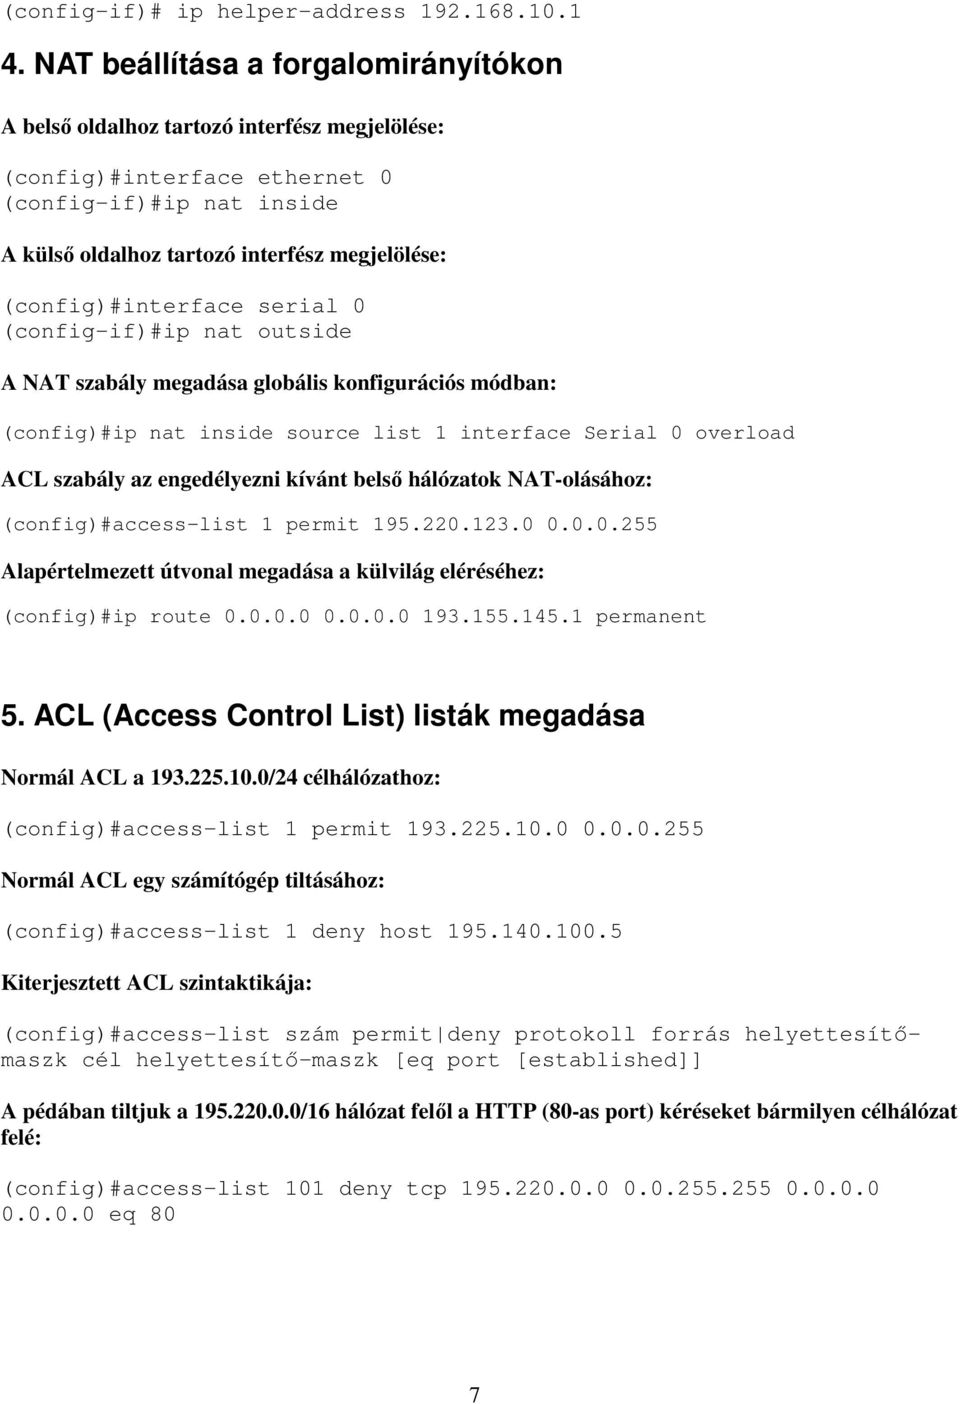 (config)#interface serial 0 (config-if)#ip nat outside A NAT szabály megadása globális konfigurációs módban: (config)#ip nat inside source list 1 interface Serial 0 overload ACL szabály az